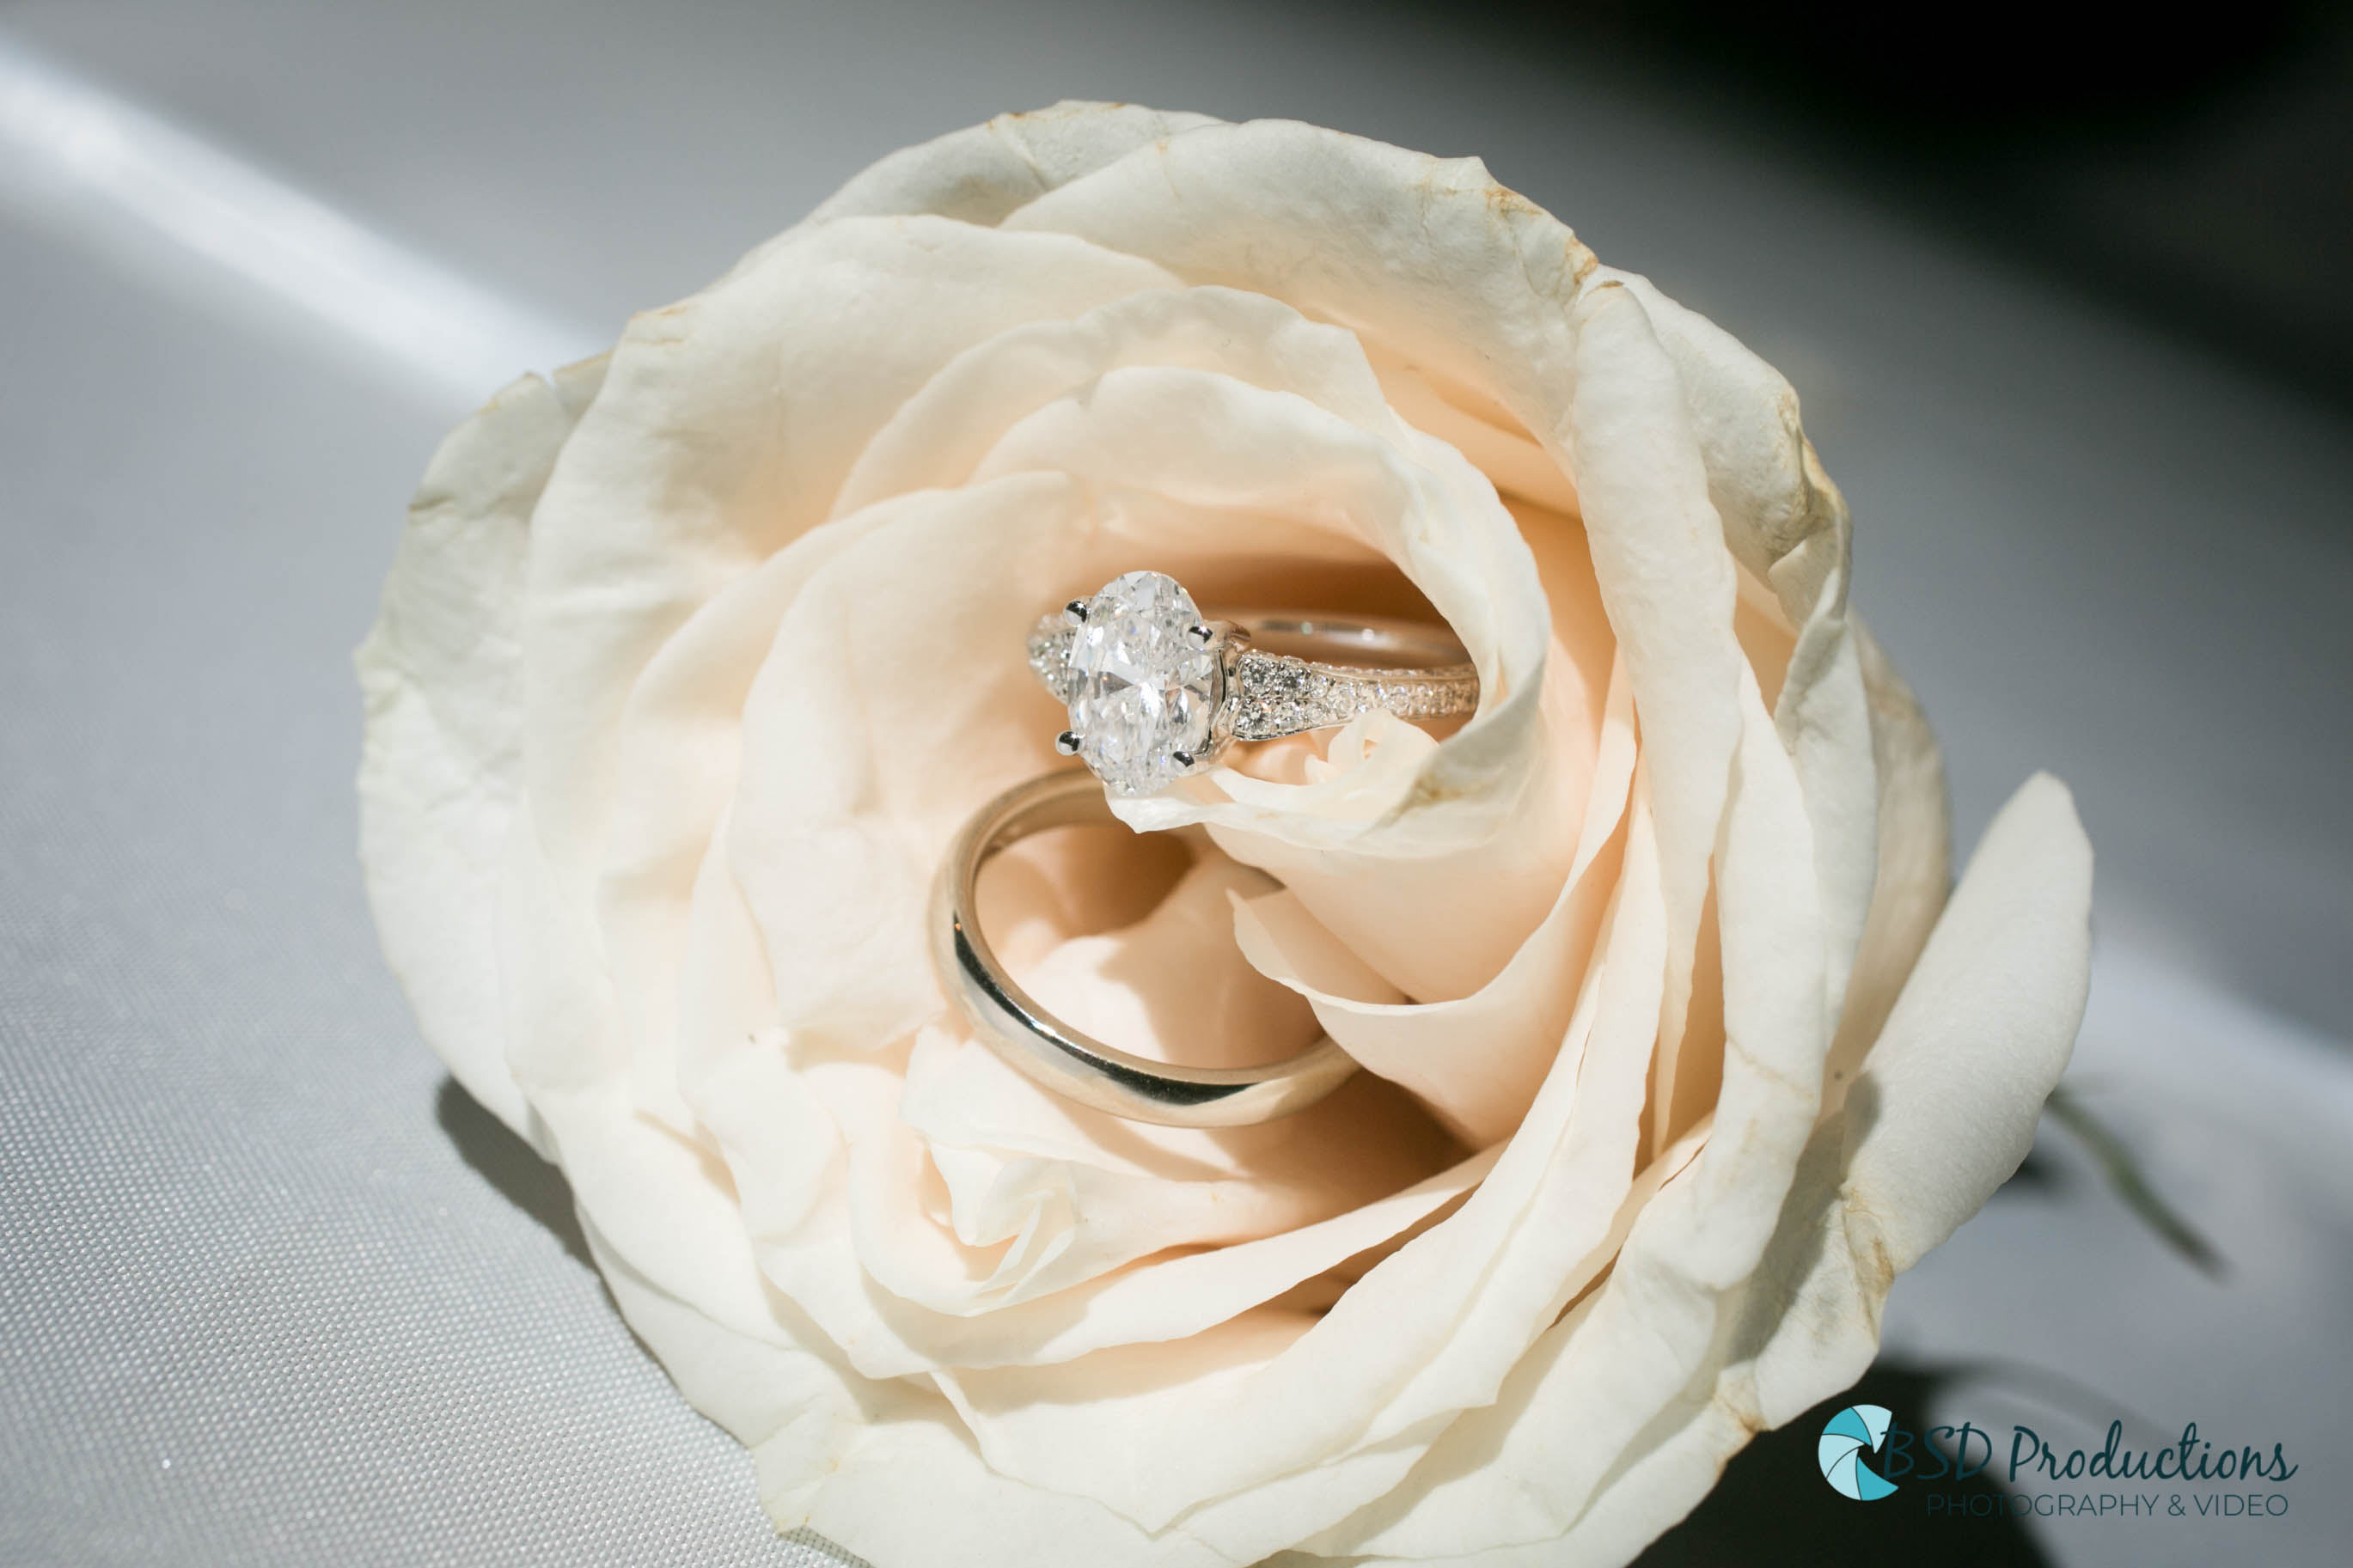 UH5A7880 Wedding – BSD Productions Photography